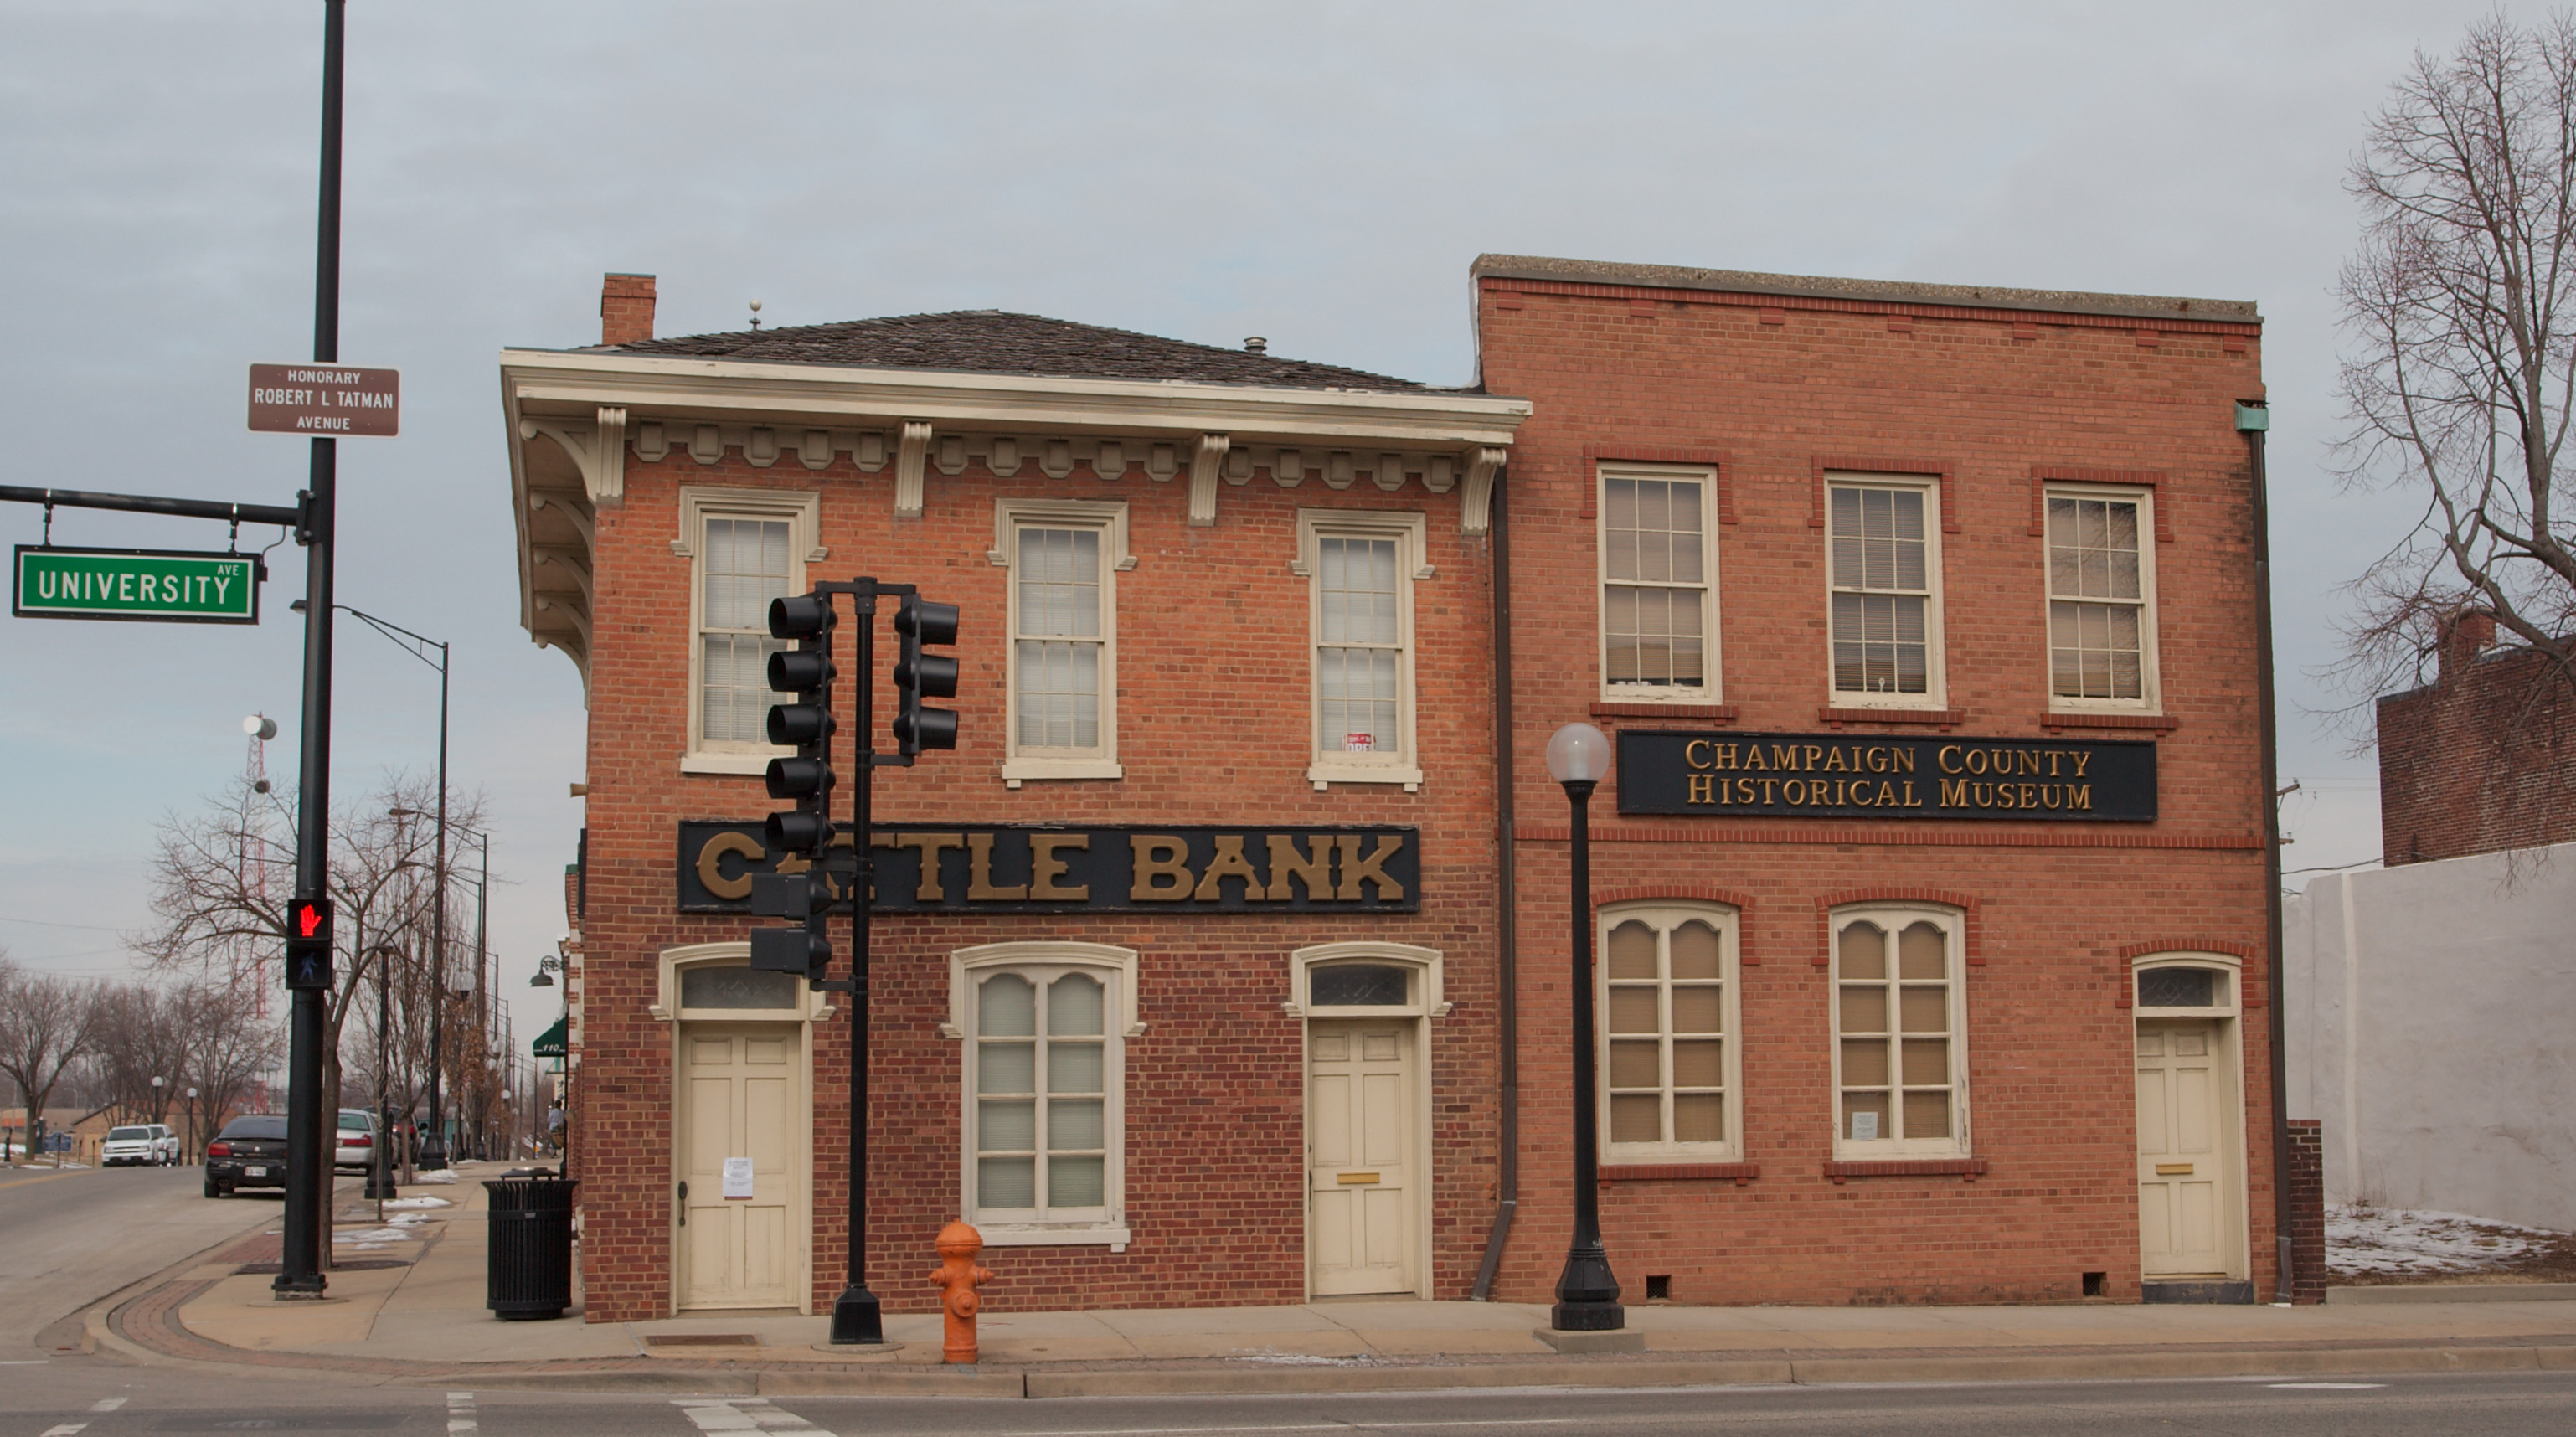 The museum is currently housed in the oldest known commercial building in Champaign County: Cattle Bank, built in 1857.